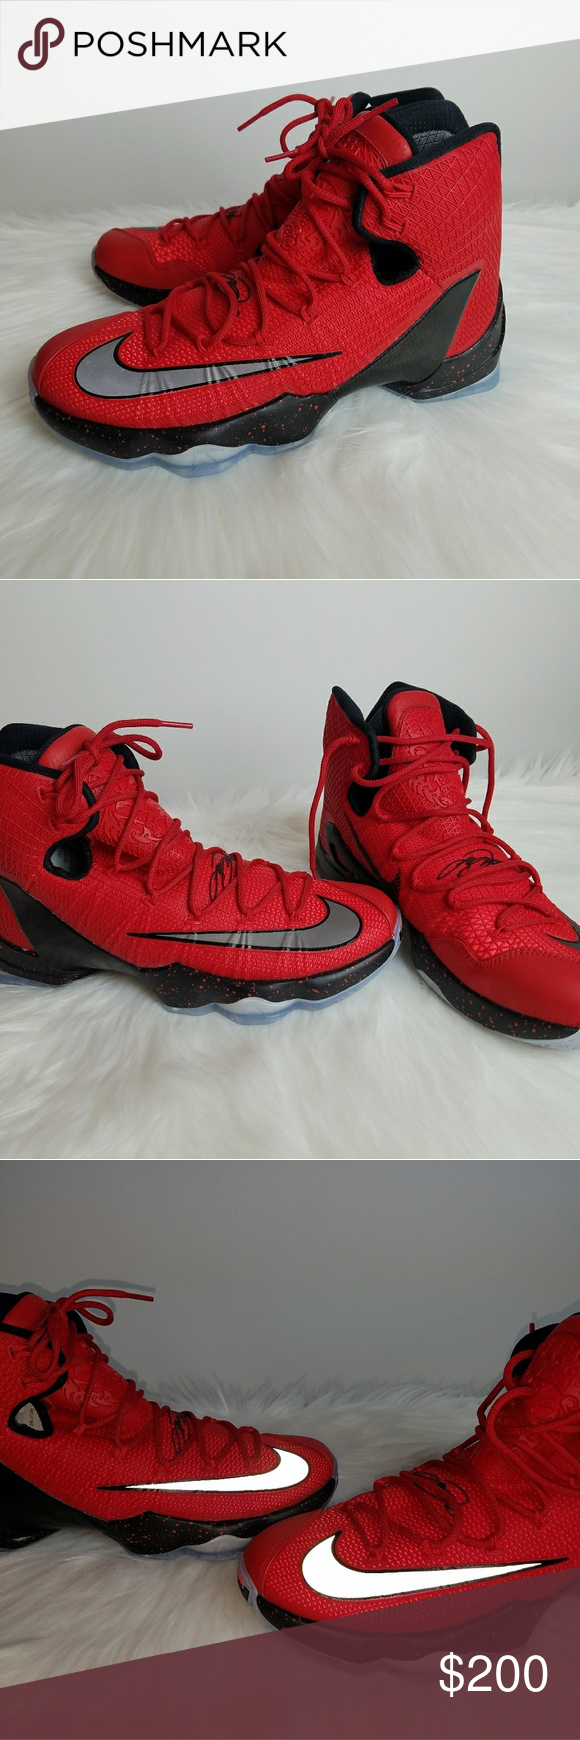 8a26cf692cfd LeBron James Elite MVP Red Nikes Size 10.5 New! Very rare and very sought  after